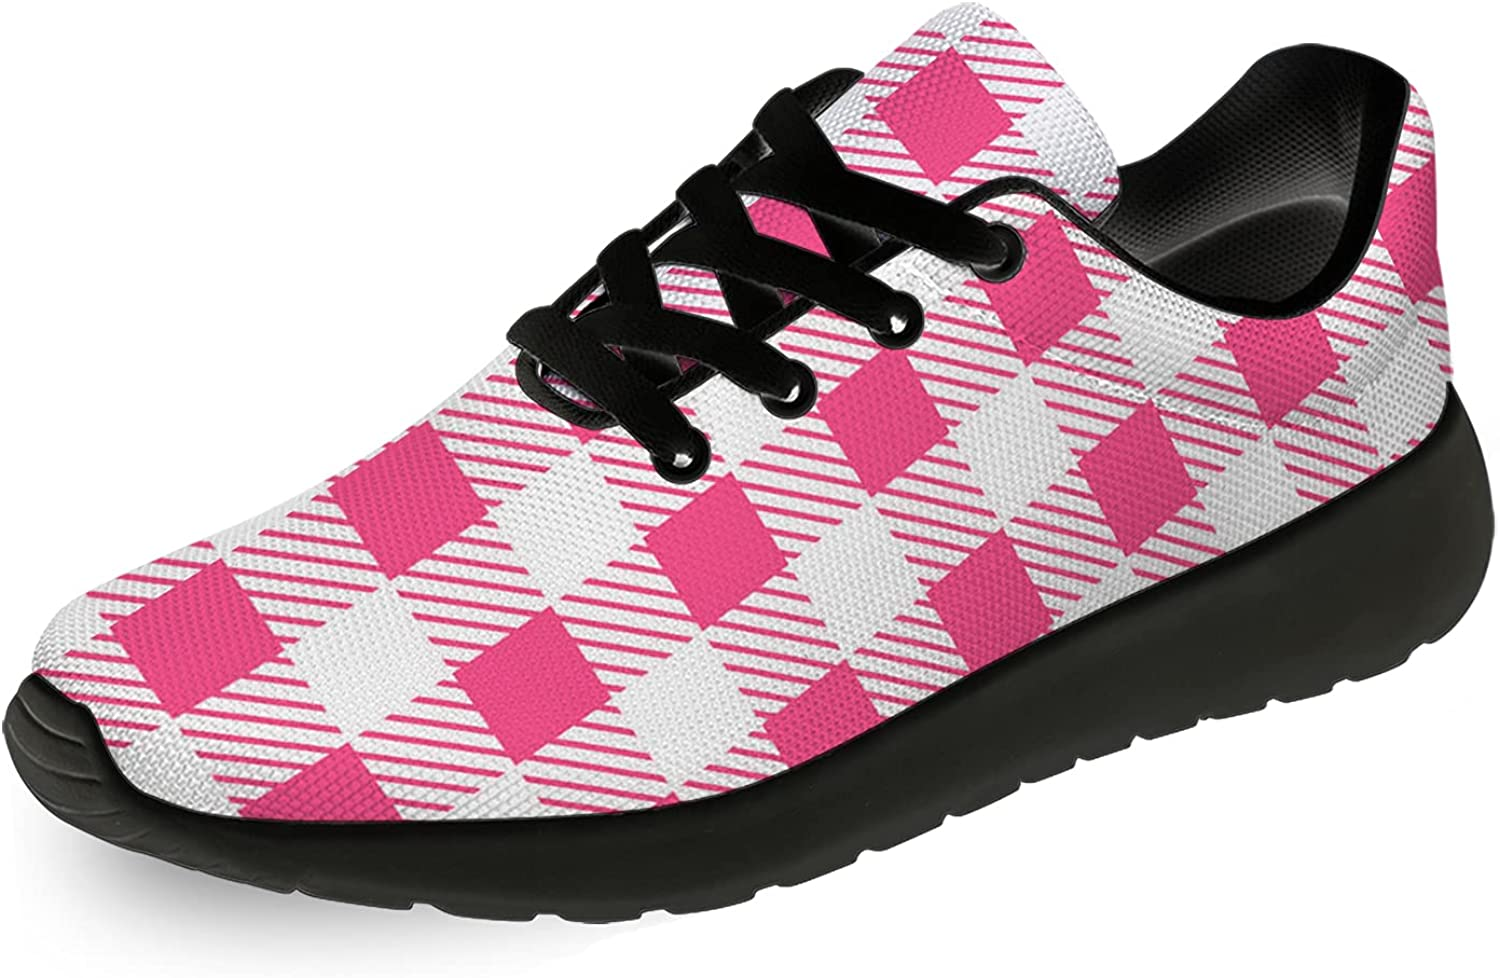 Ciadoon Plaid Shoes Max 61% ! Super beauty product restock quality top! OFF Mens Lightweight Walkin Running Womens